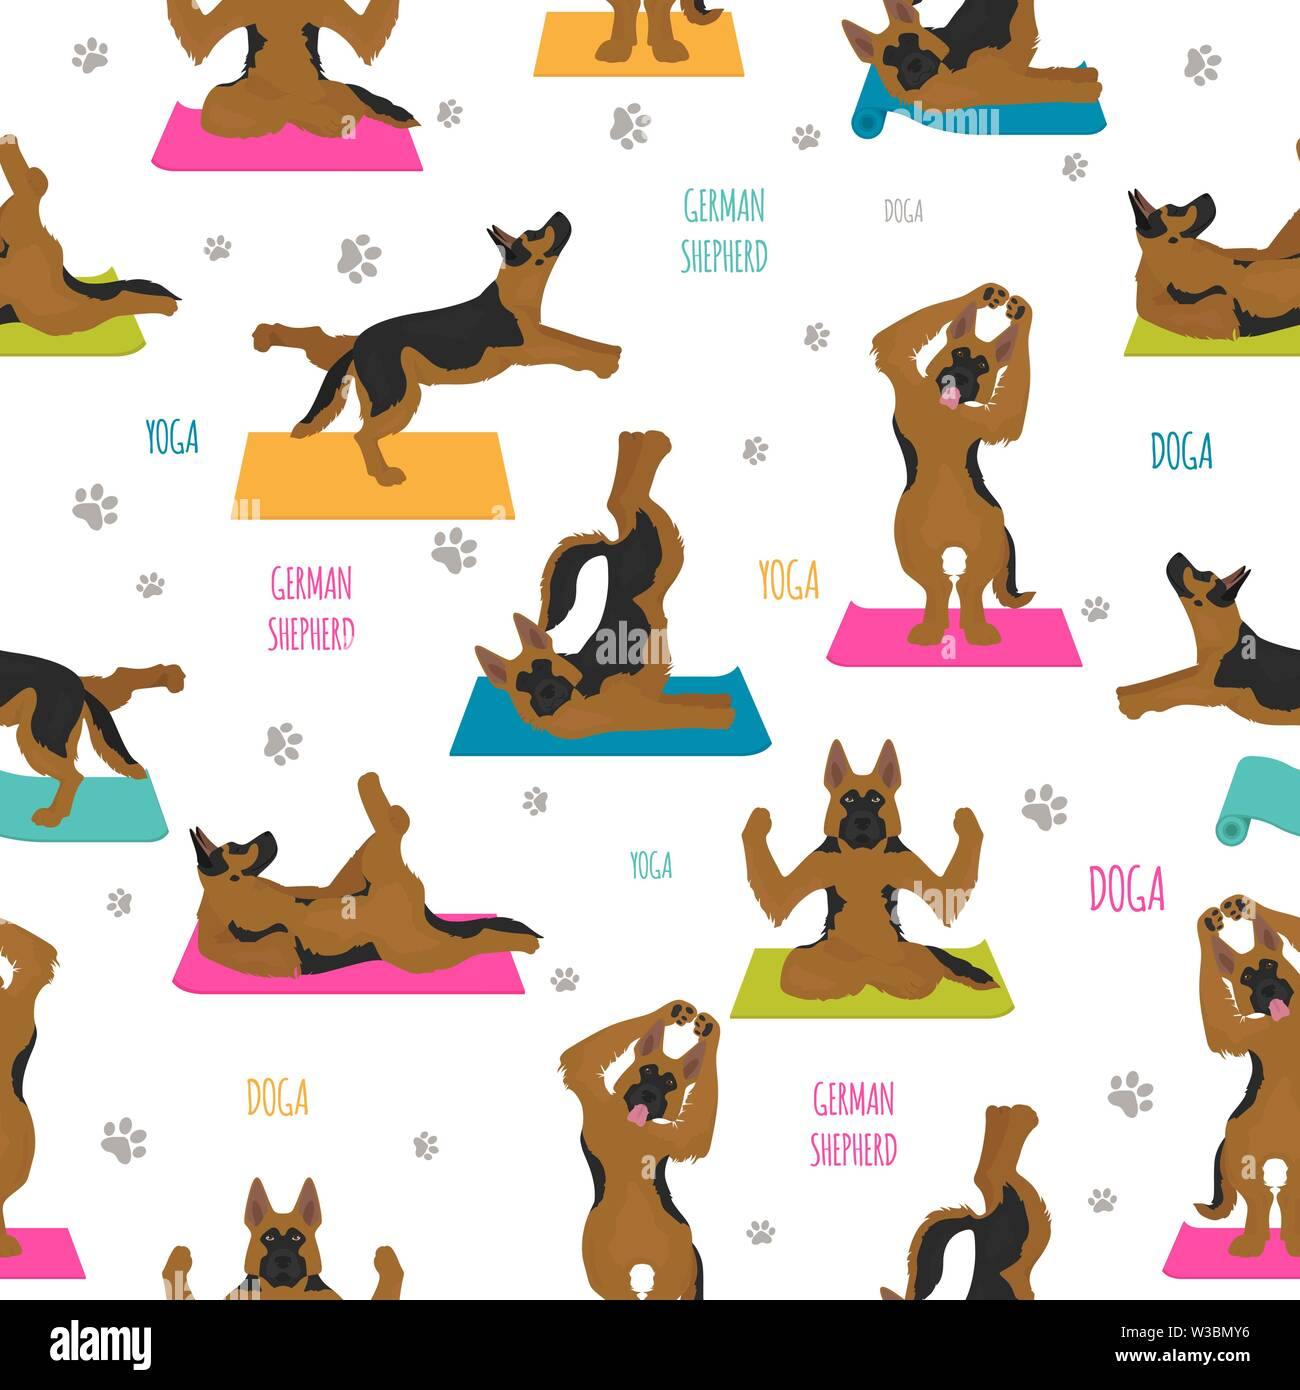 Yoga dogs poses and exercises. German shepherd seamless pattern. Vector illustration - Stock Vector